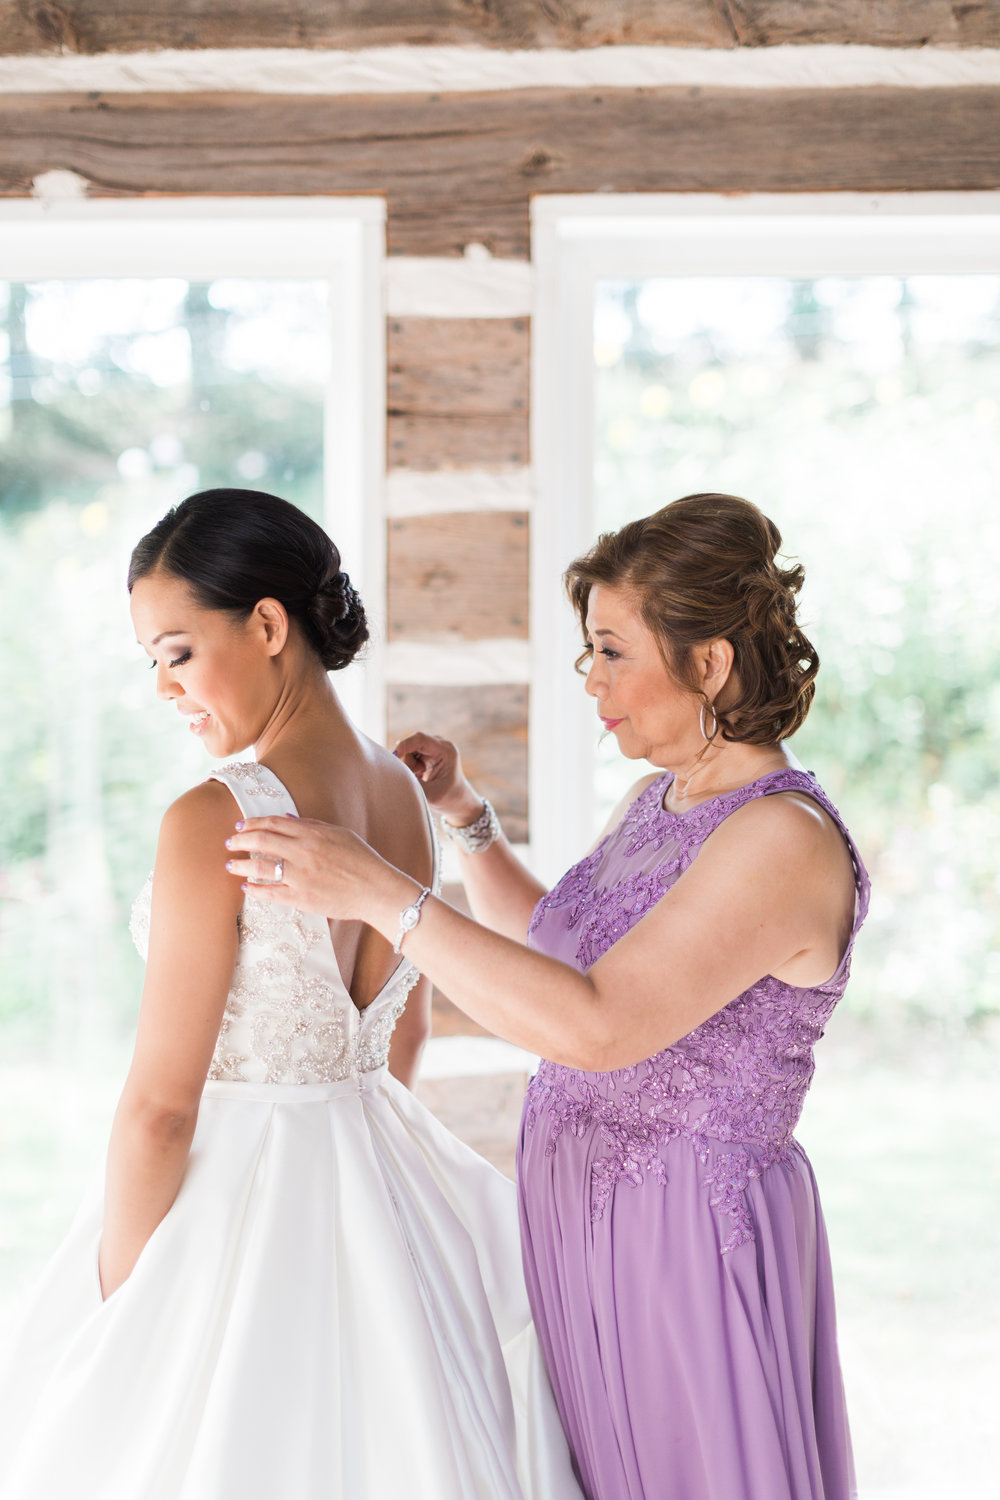 Alton Mills Wedding - Bride Getting Ready-45.jpg